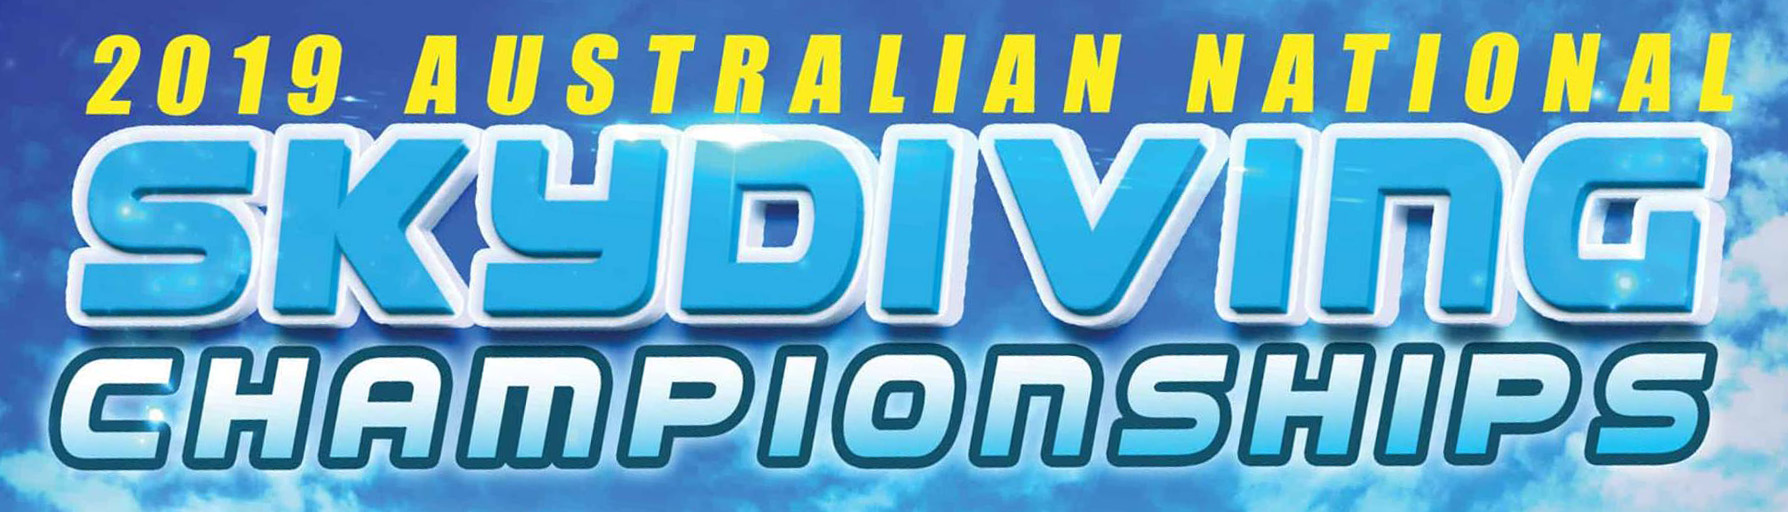 AUS Nationals 2019 header